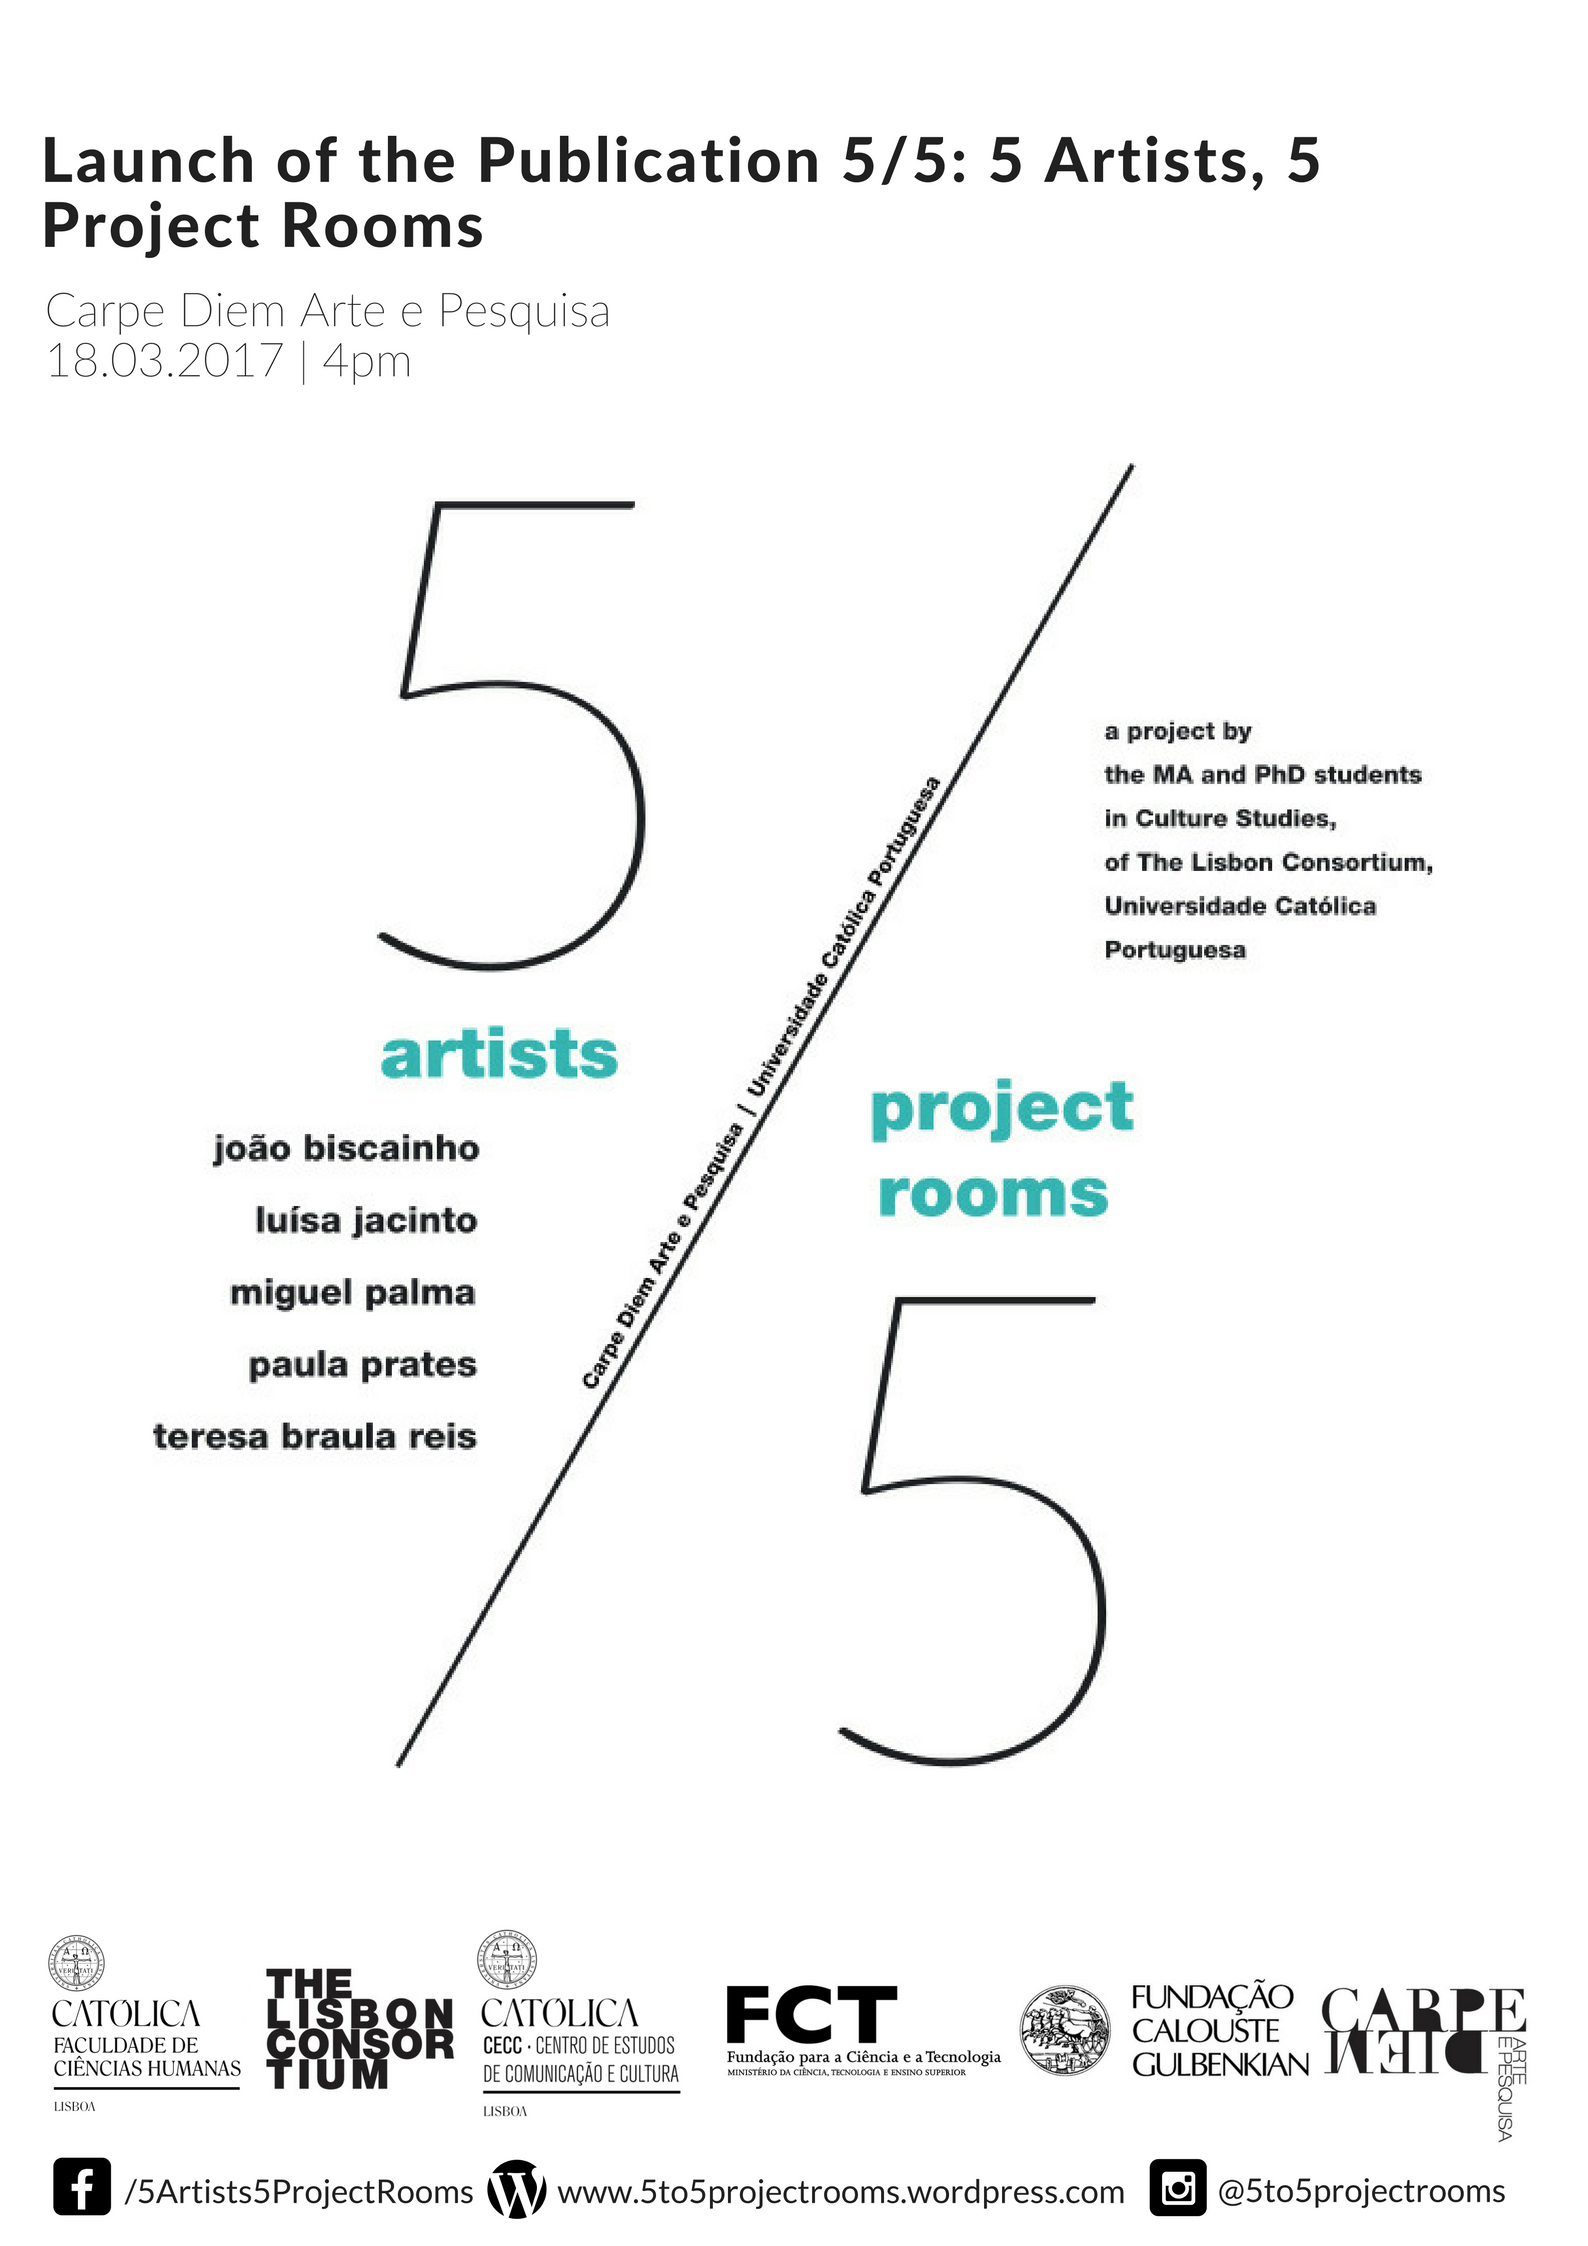 5/5:5 Artists, 5 Project Rooms